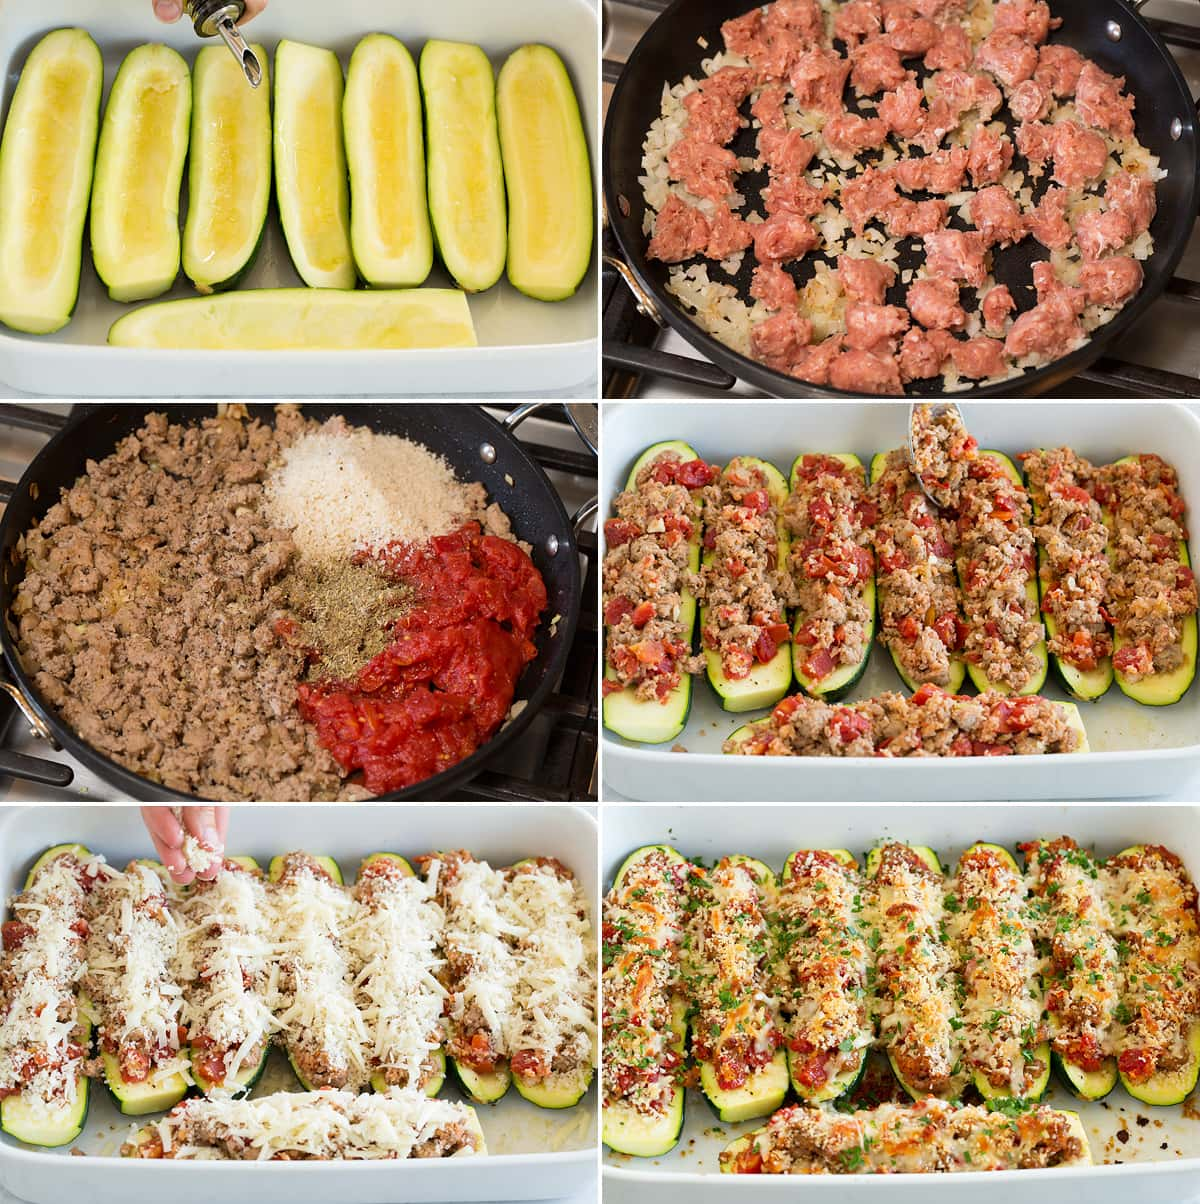 Collage of six images showing steps of making zucchini boats. Shows hollowed out zucchini boats in a baking dish. Browning onion and sausage. Adding panko, seasoning and tomatoes. Filling boats. Topping with cheeses. And shows finished after baking.